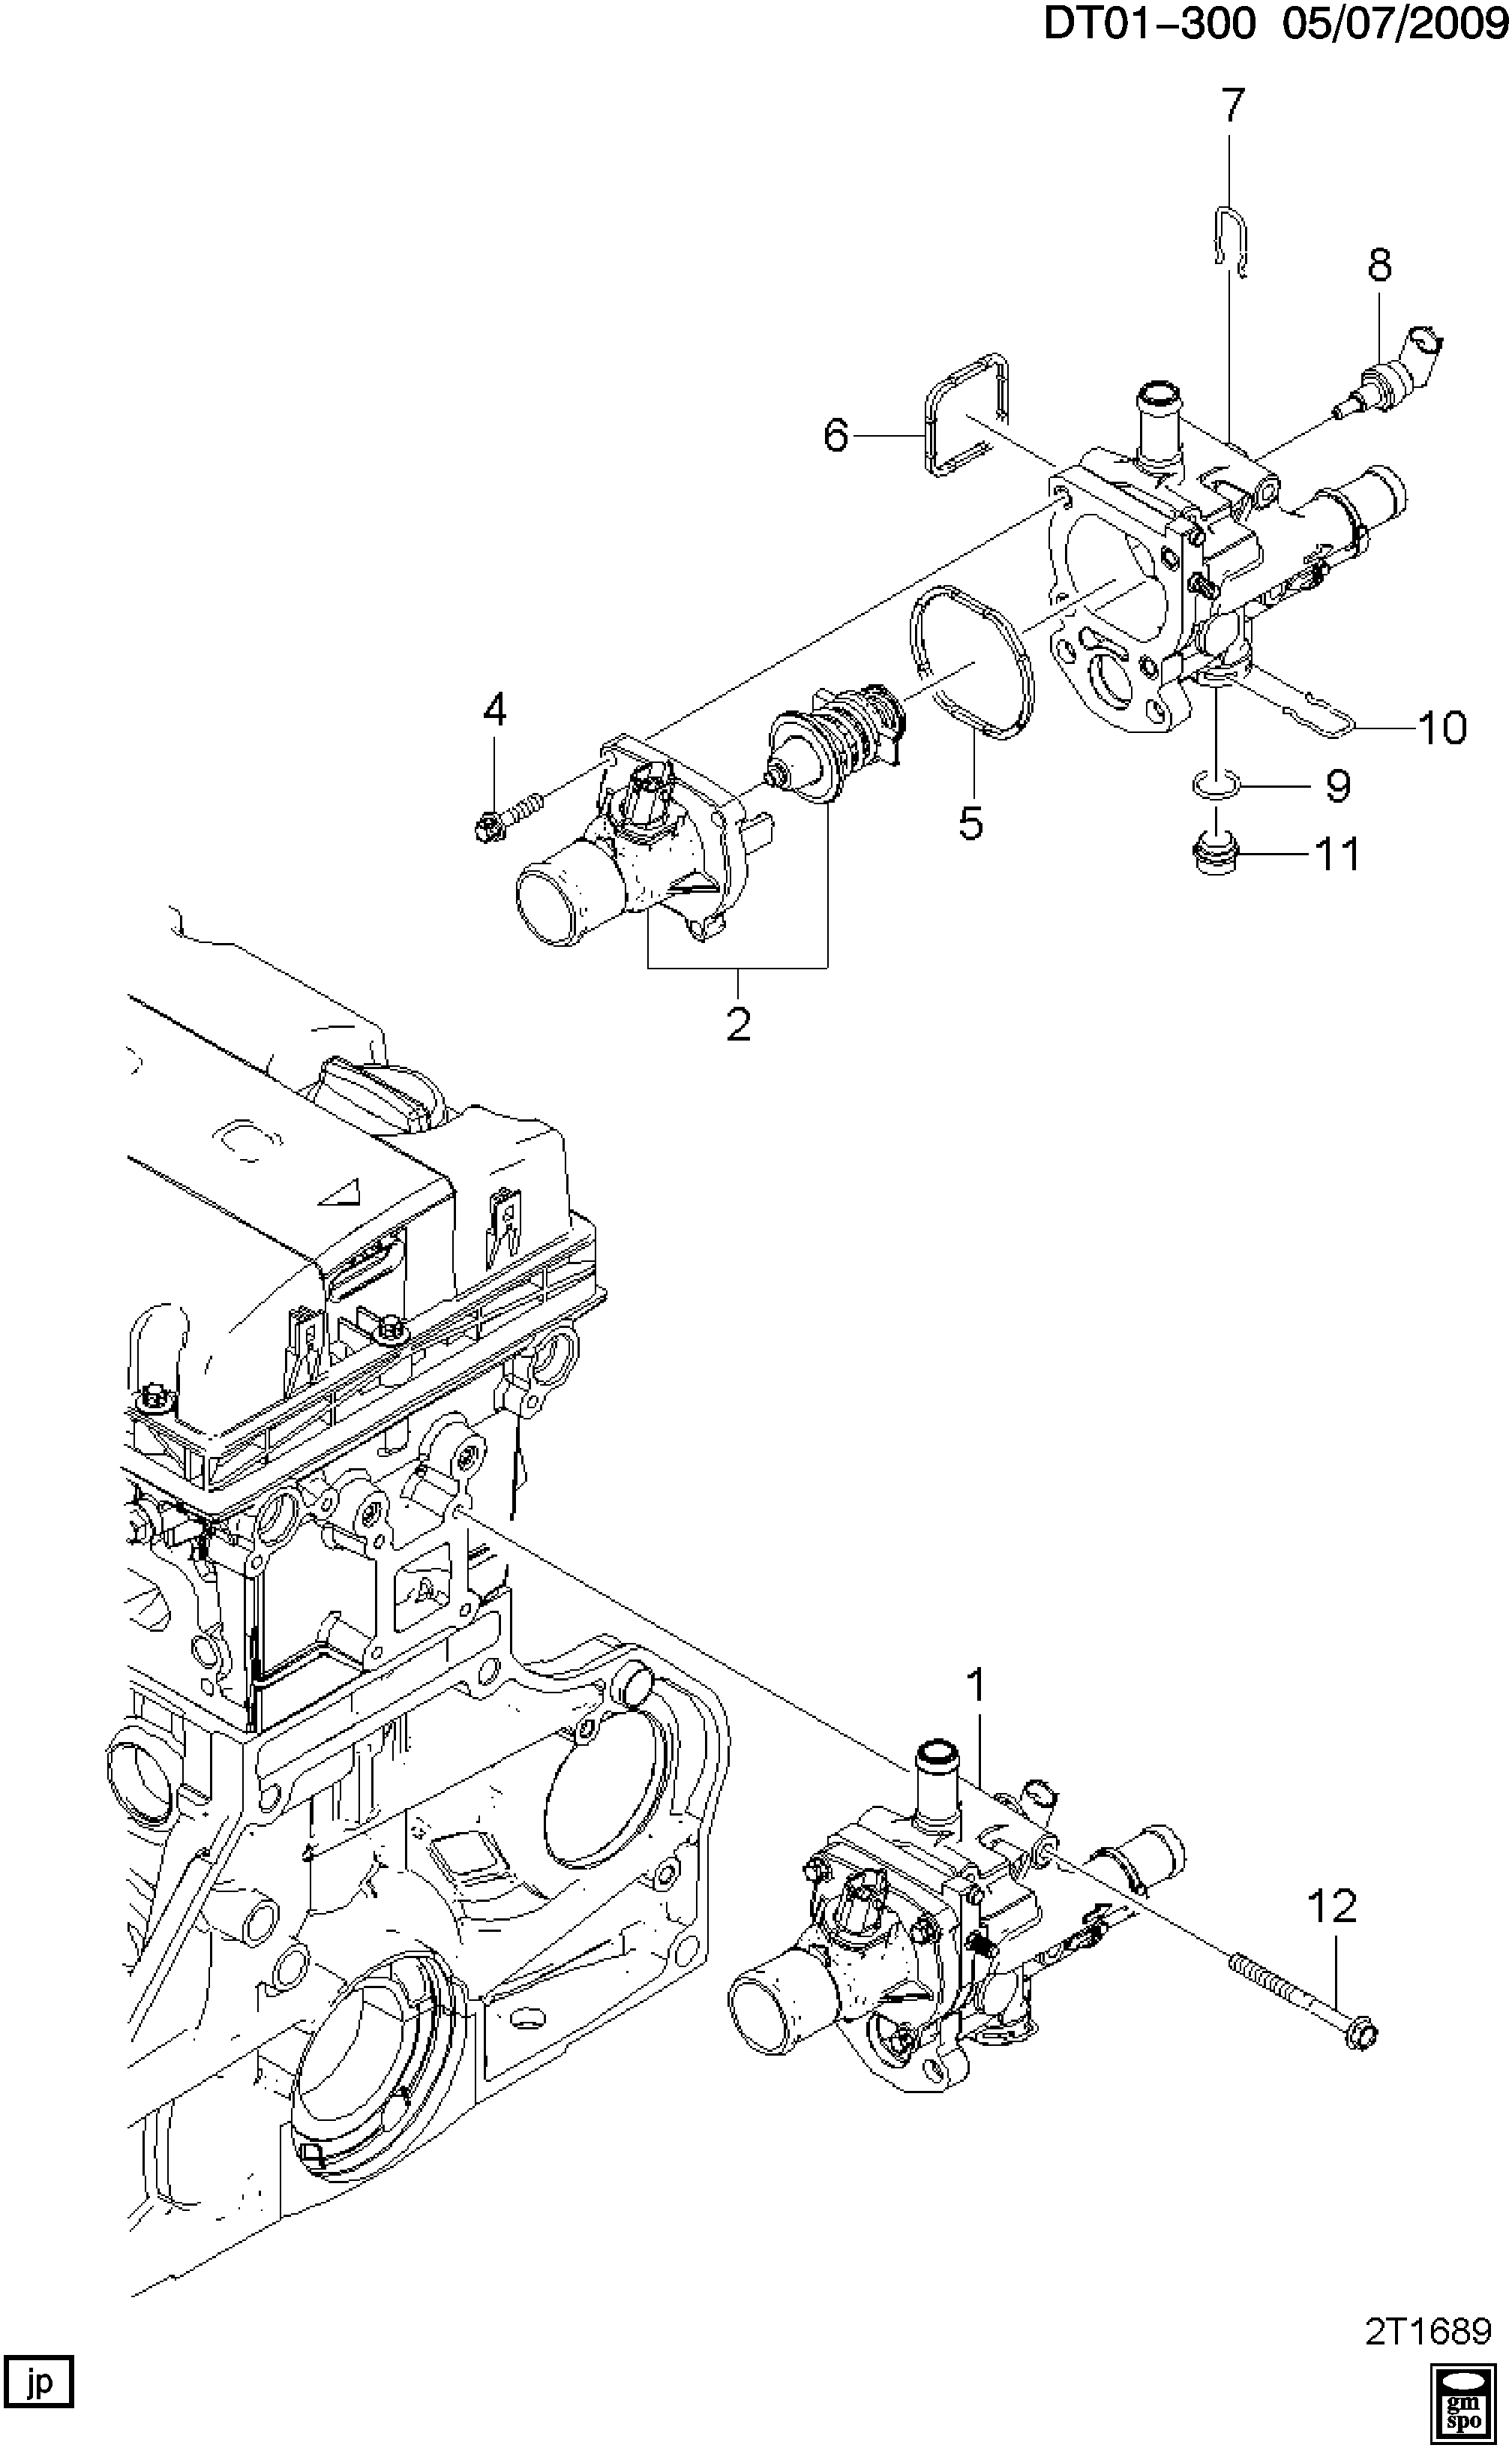 2009 Chevy Aveo Radiator Diagram Circuit Wiring And Hub Fuse Box Thermostat Housing Search For Diagrams U2022 Rh Idijournal Com